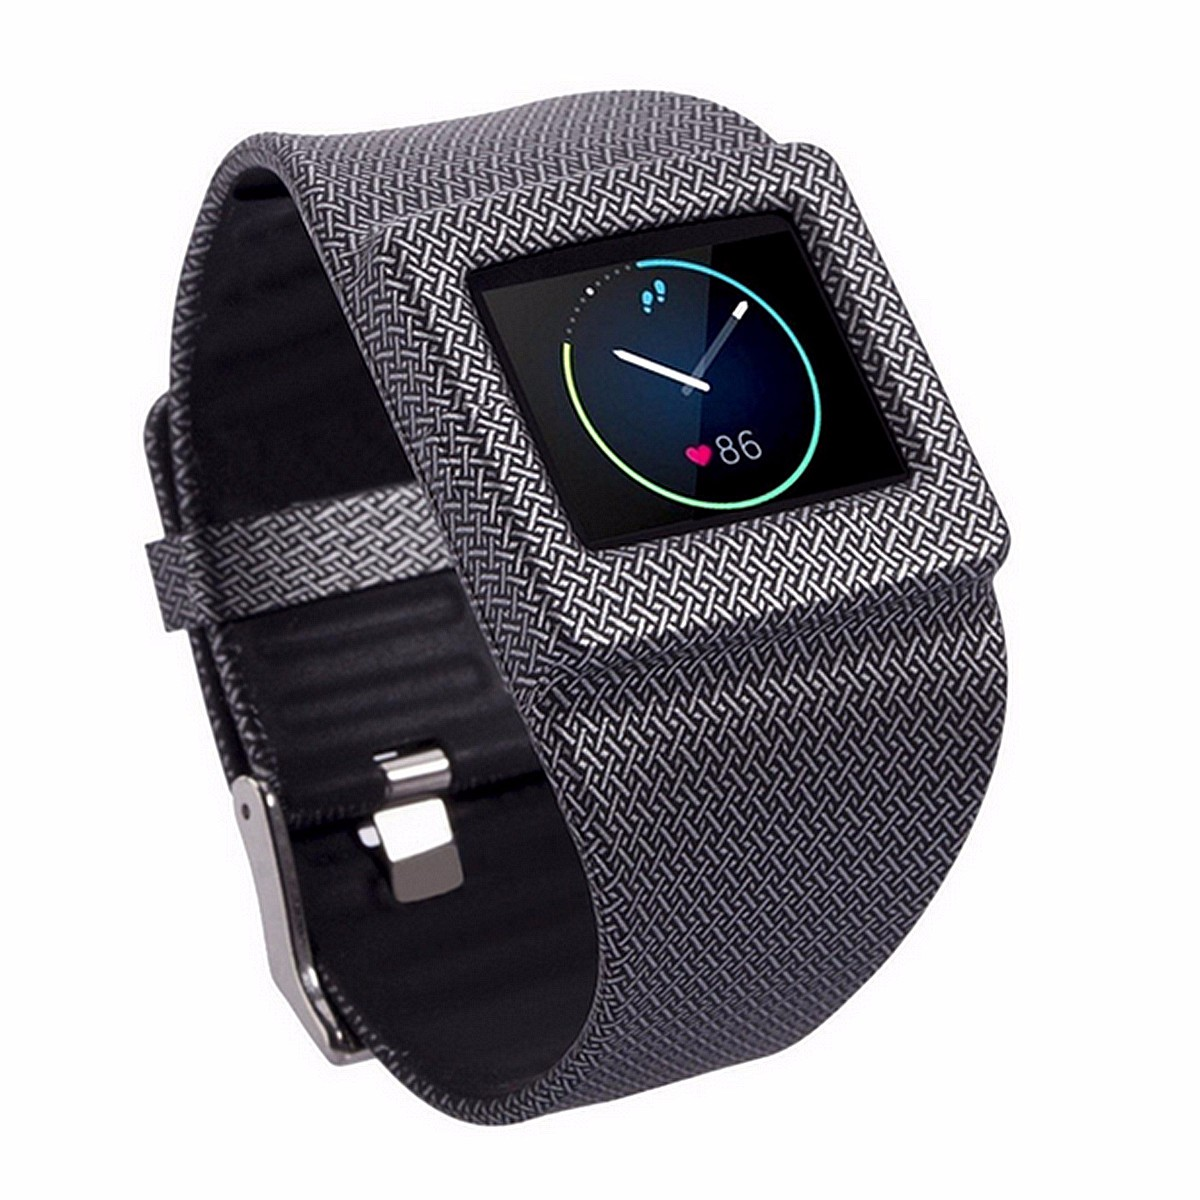 Replacement Soft Silicone Shockproof Sport Wrist Band Bracelet for Fitbit Blaze Watch